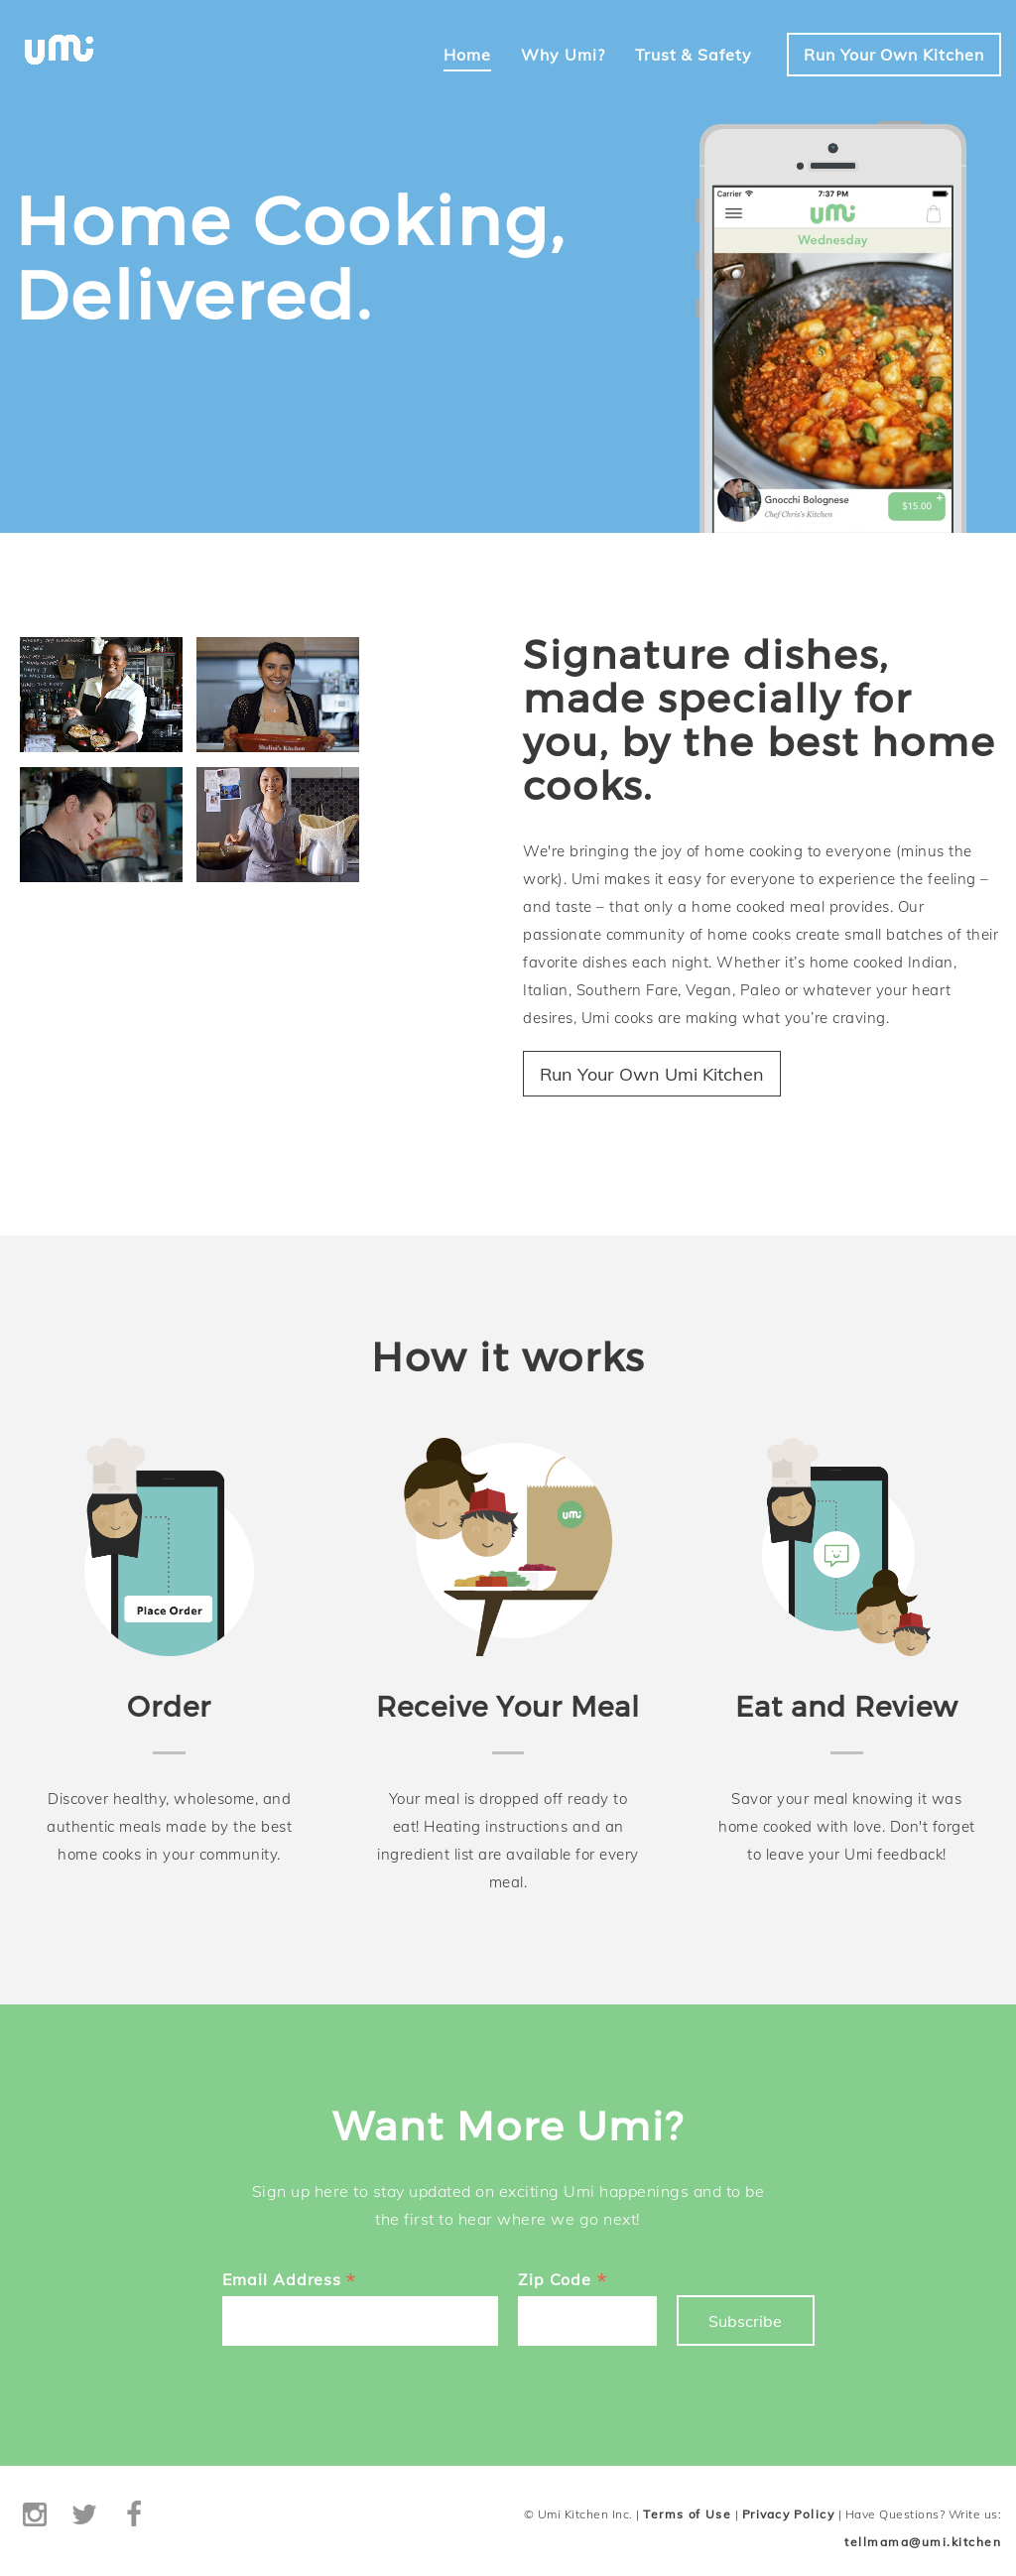 Umi Kitchen Competitors, Revenue and Employees - Owler Company Profile